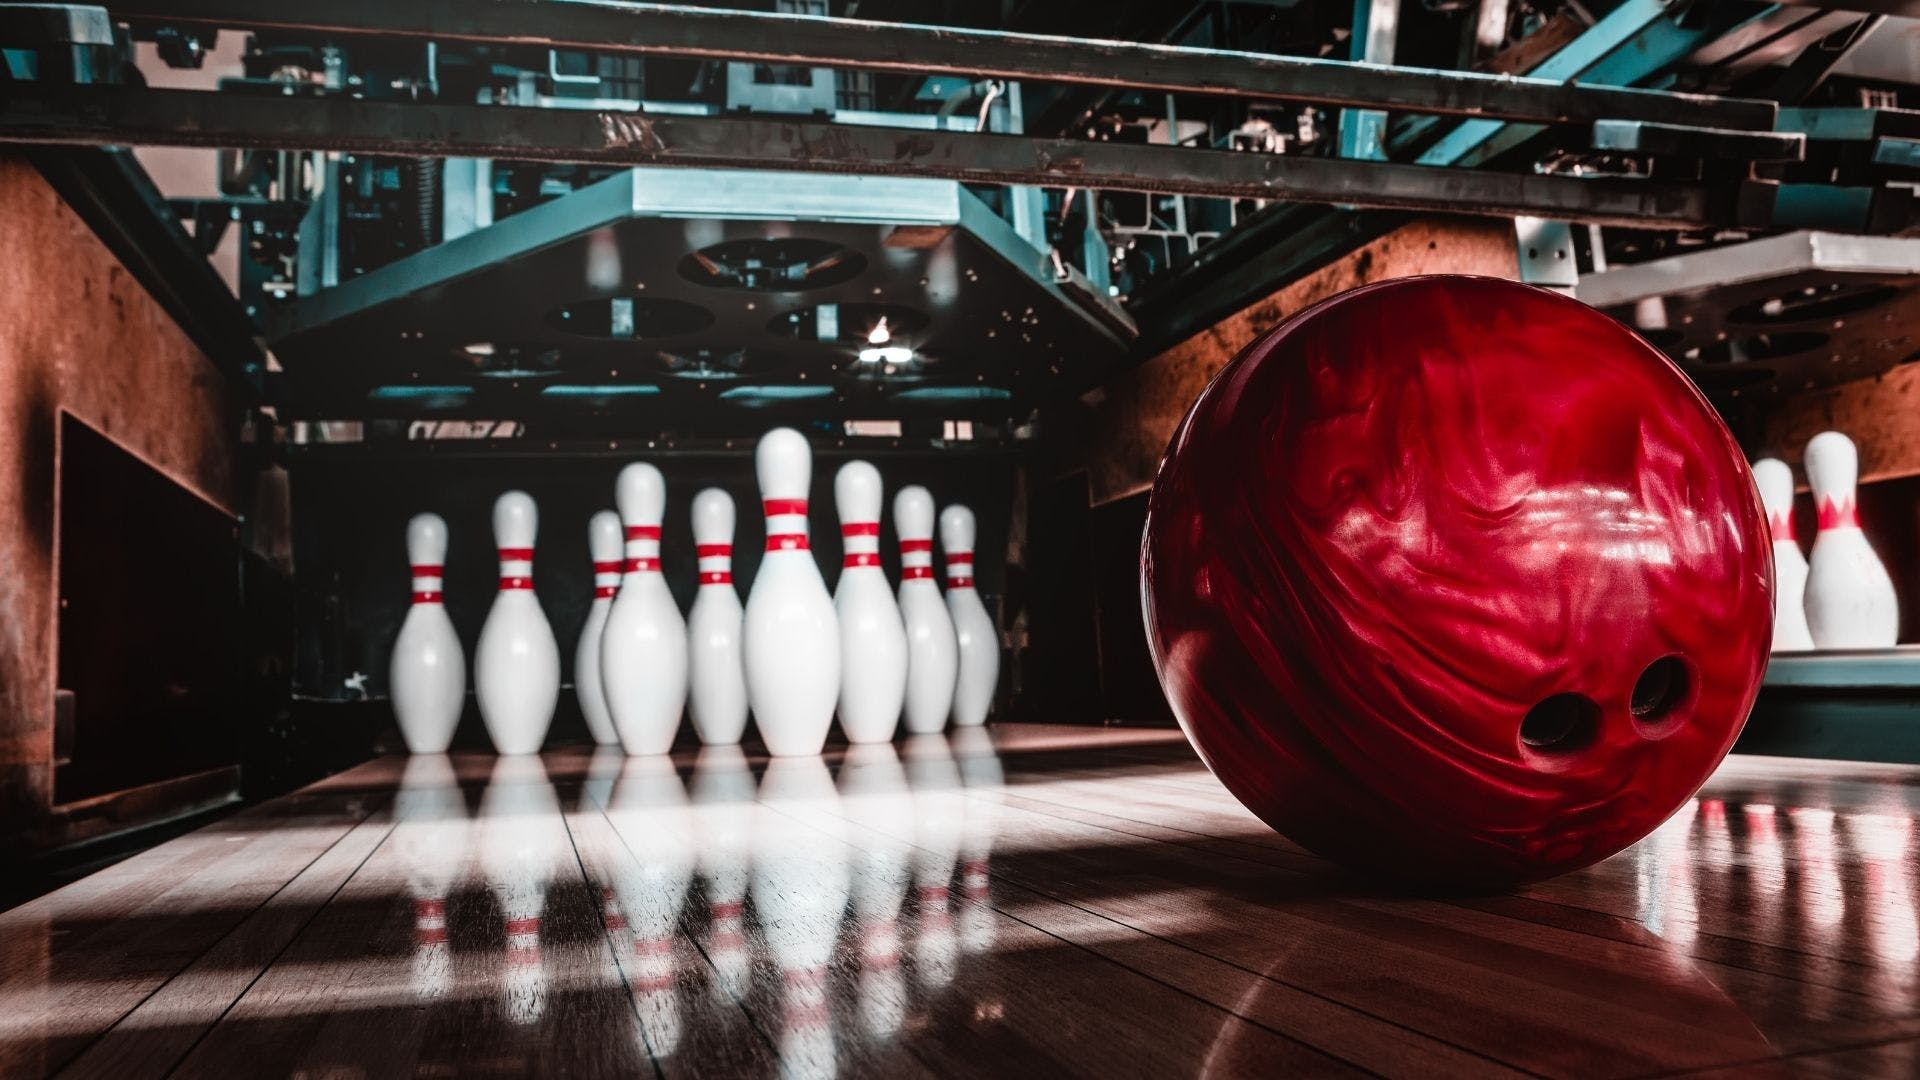 Bowling ball with pins in the background